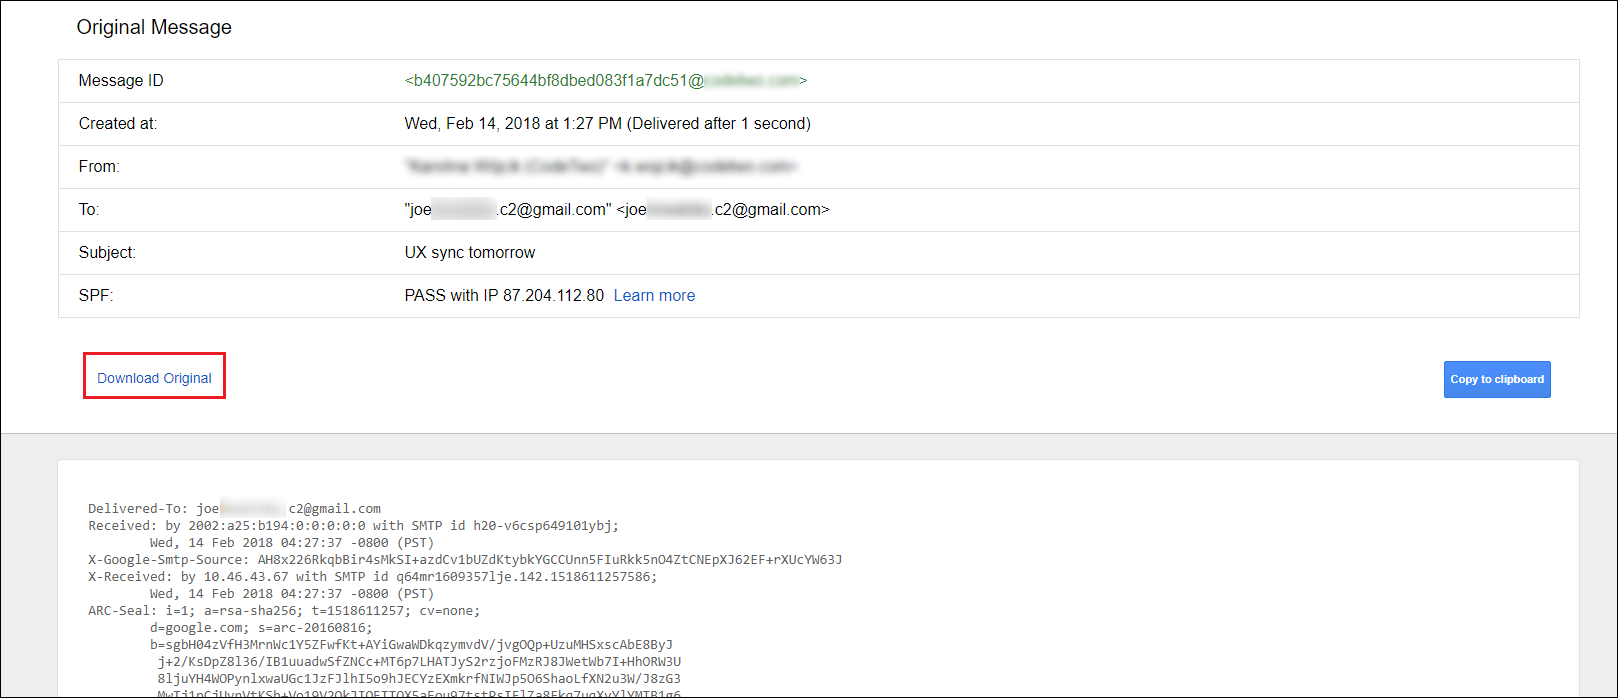 How to export an email message to the MSG and EML format